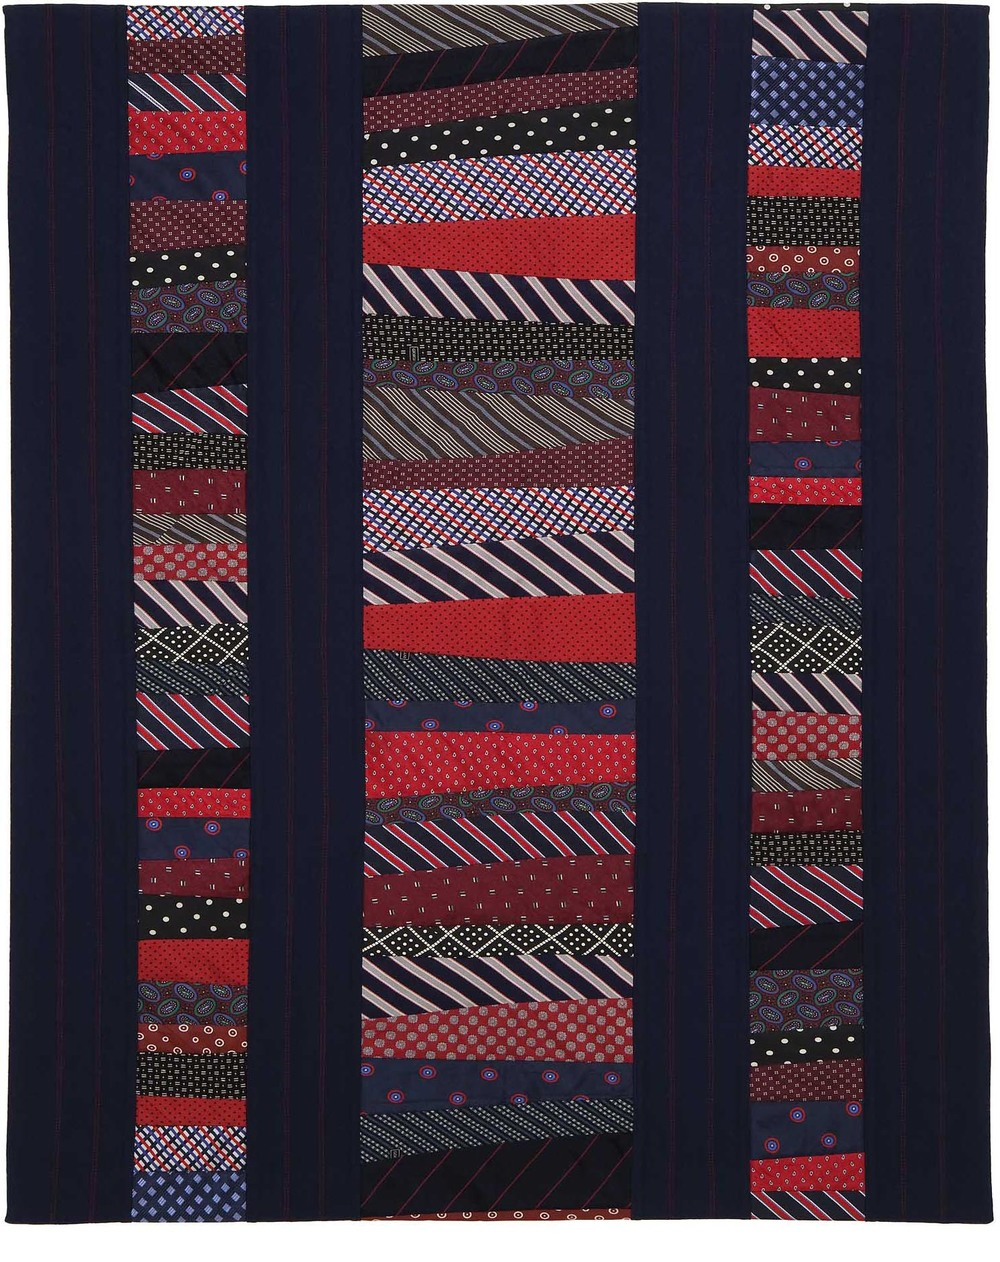 "Ties that Bind, 35"" wide x 43.5"" high, 2011"